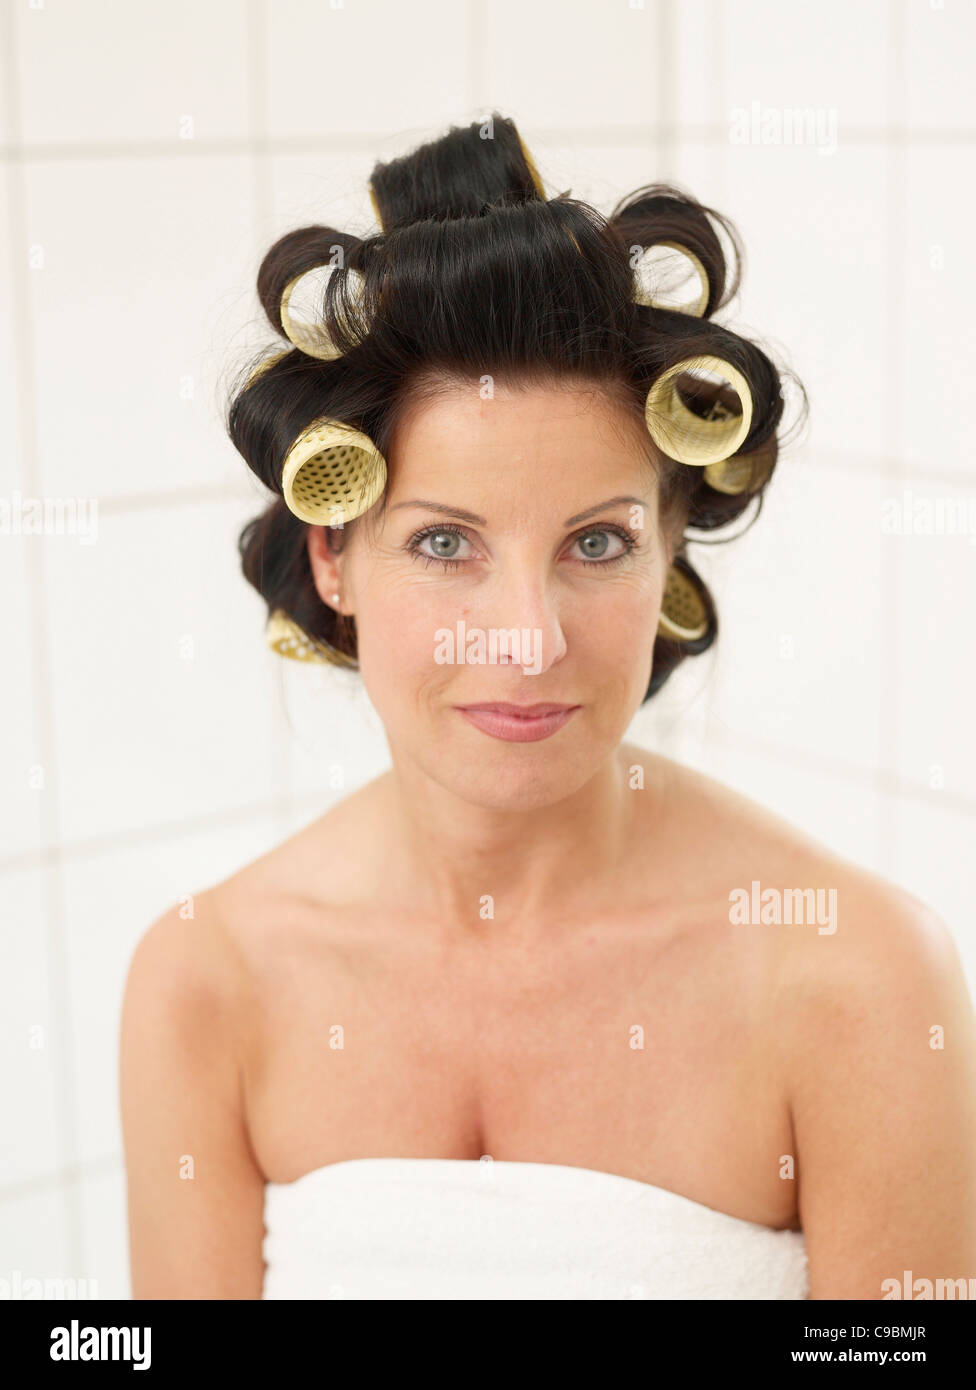 Mature woman in towel with hair rollers, smiling, portrait - Stock Image